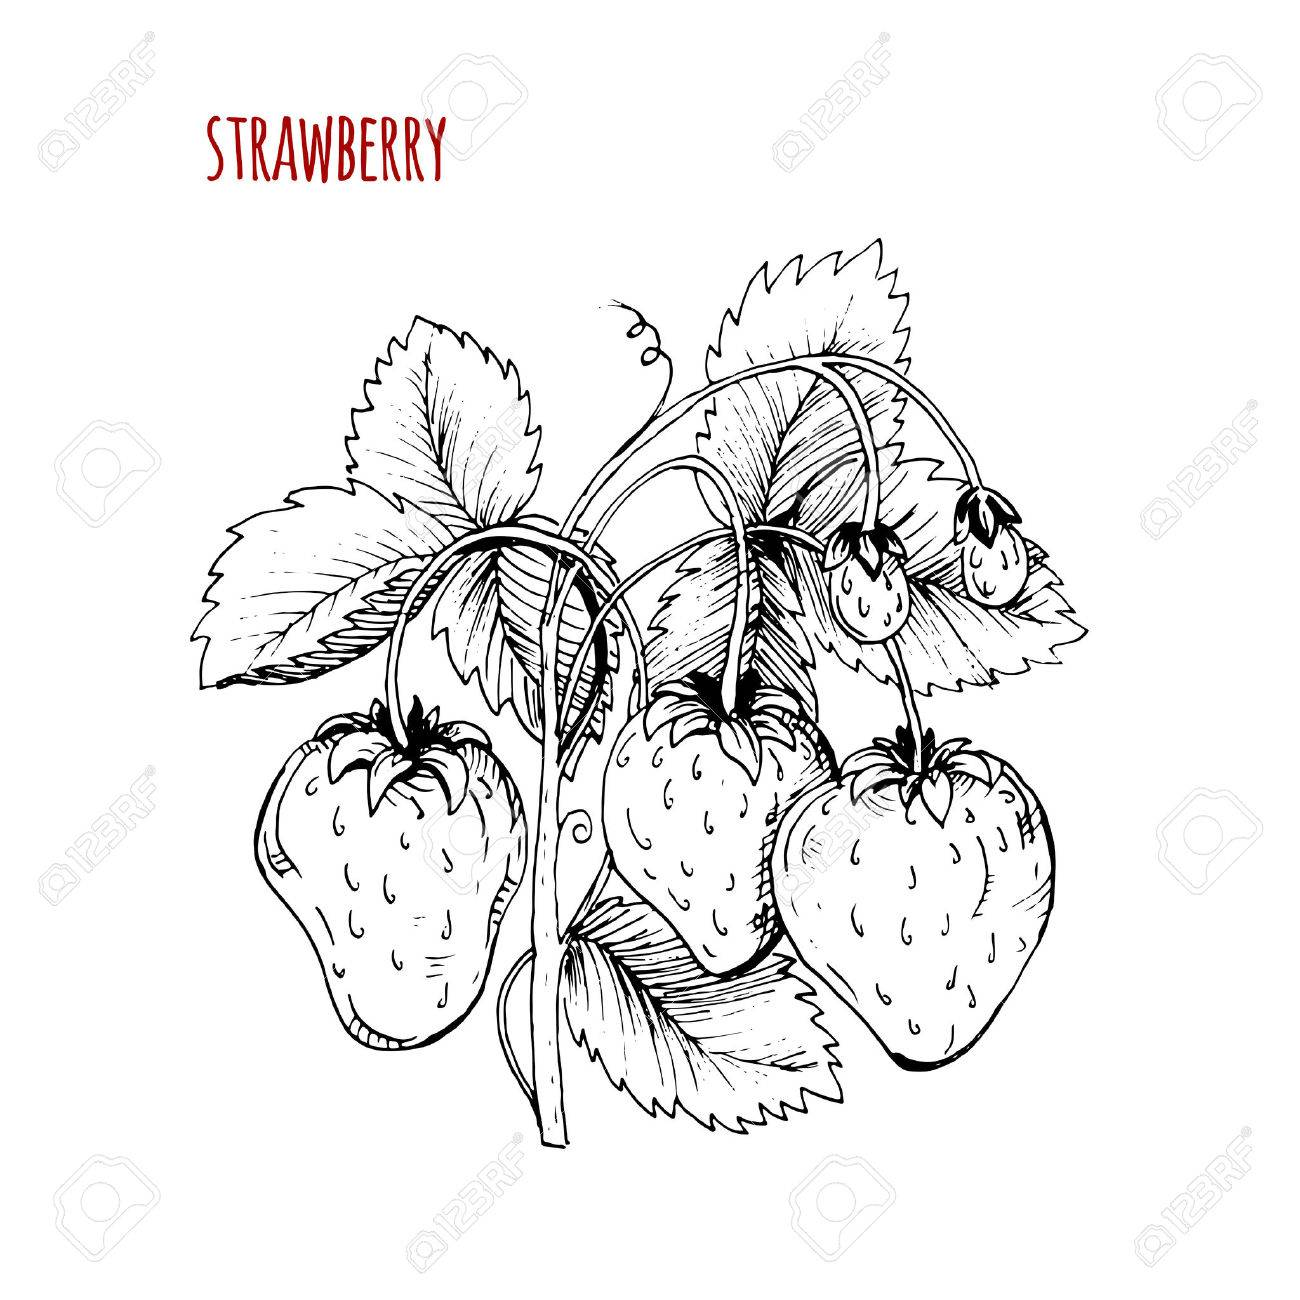 1300x1300 Strawberry Drawing. A Strawberry Bush On A White Background